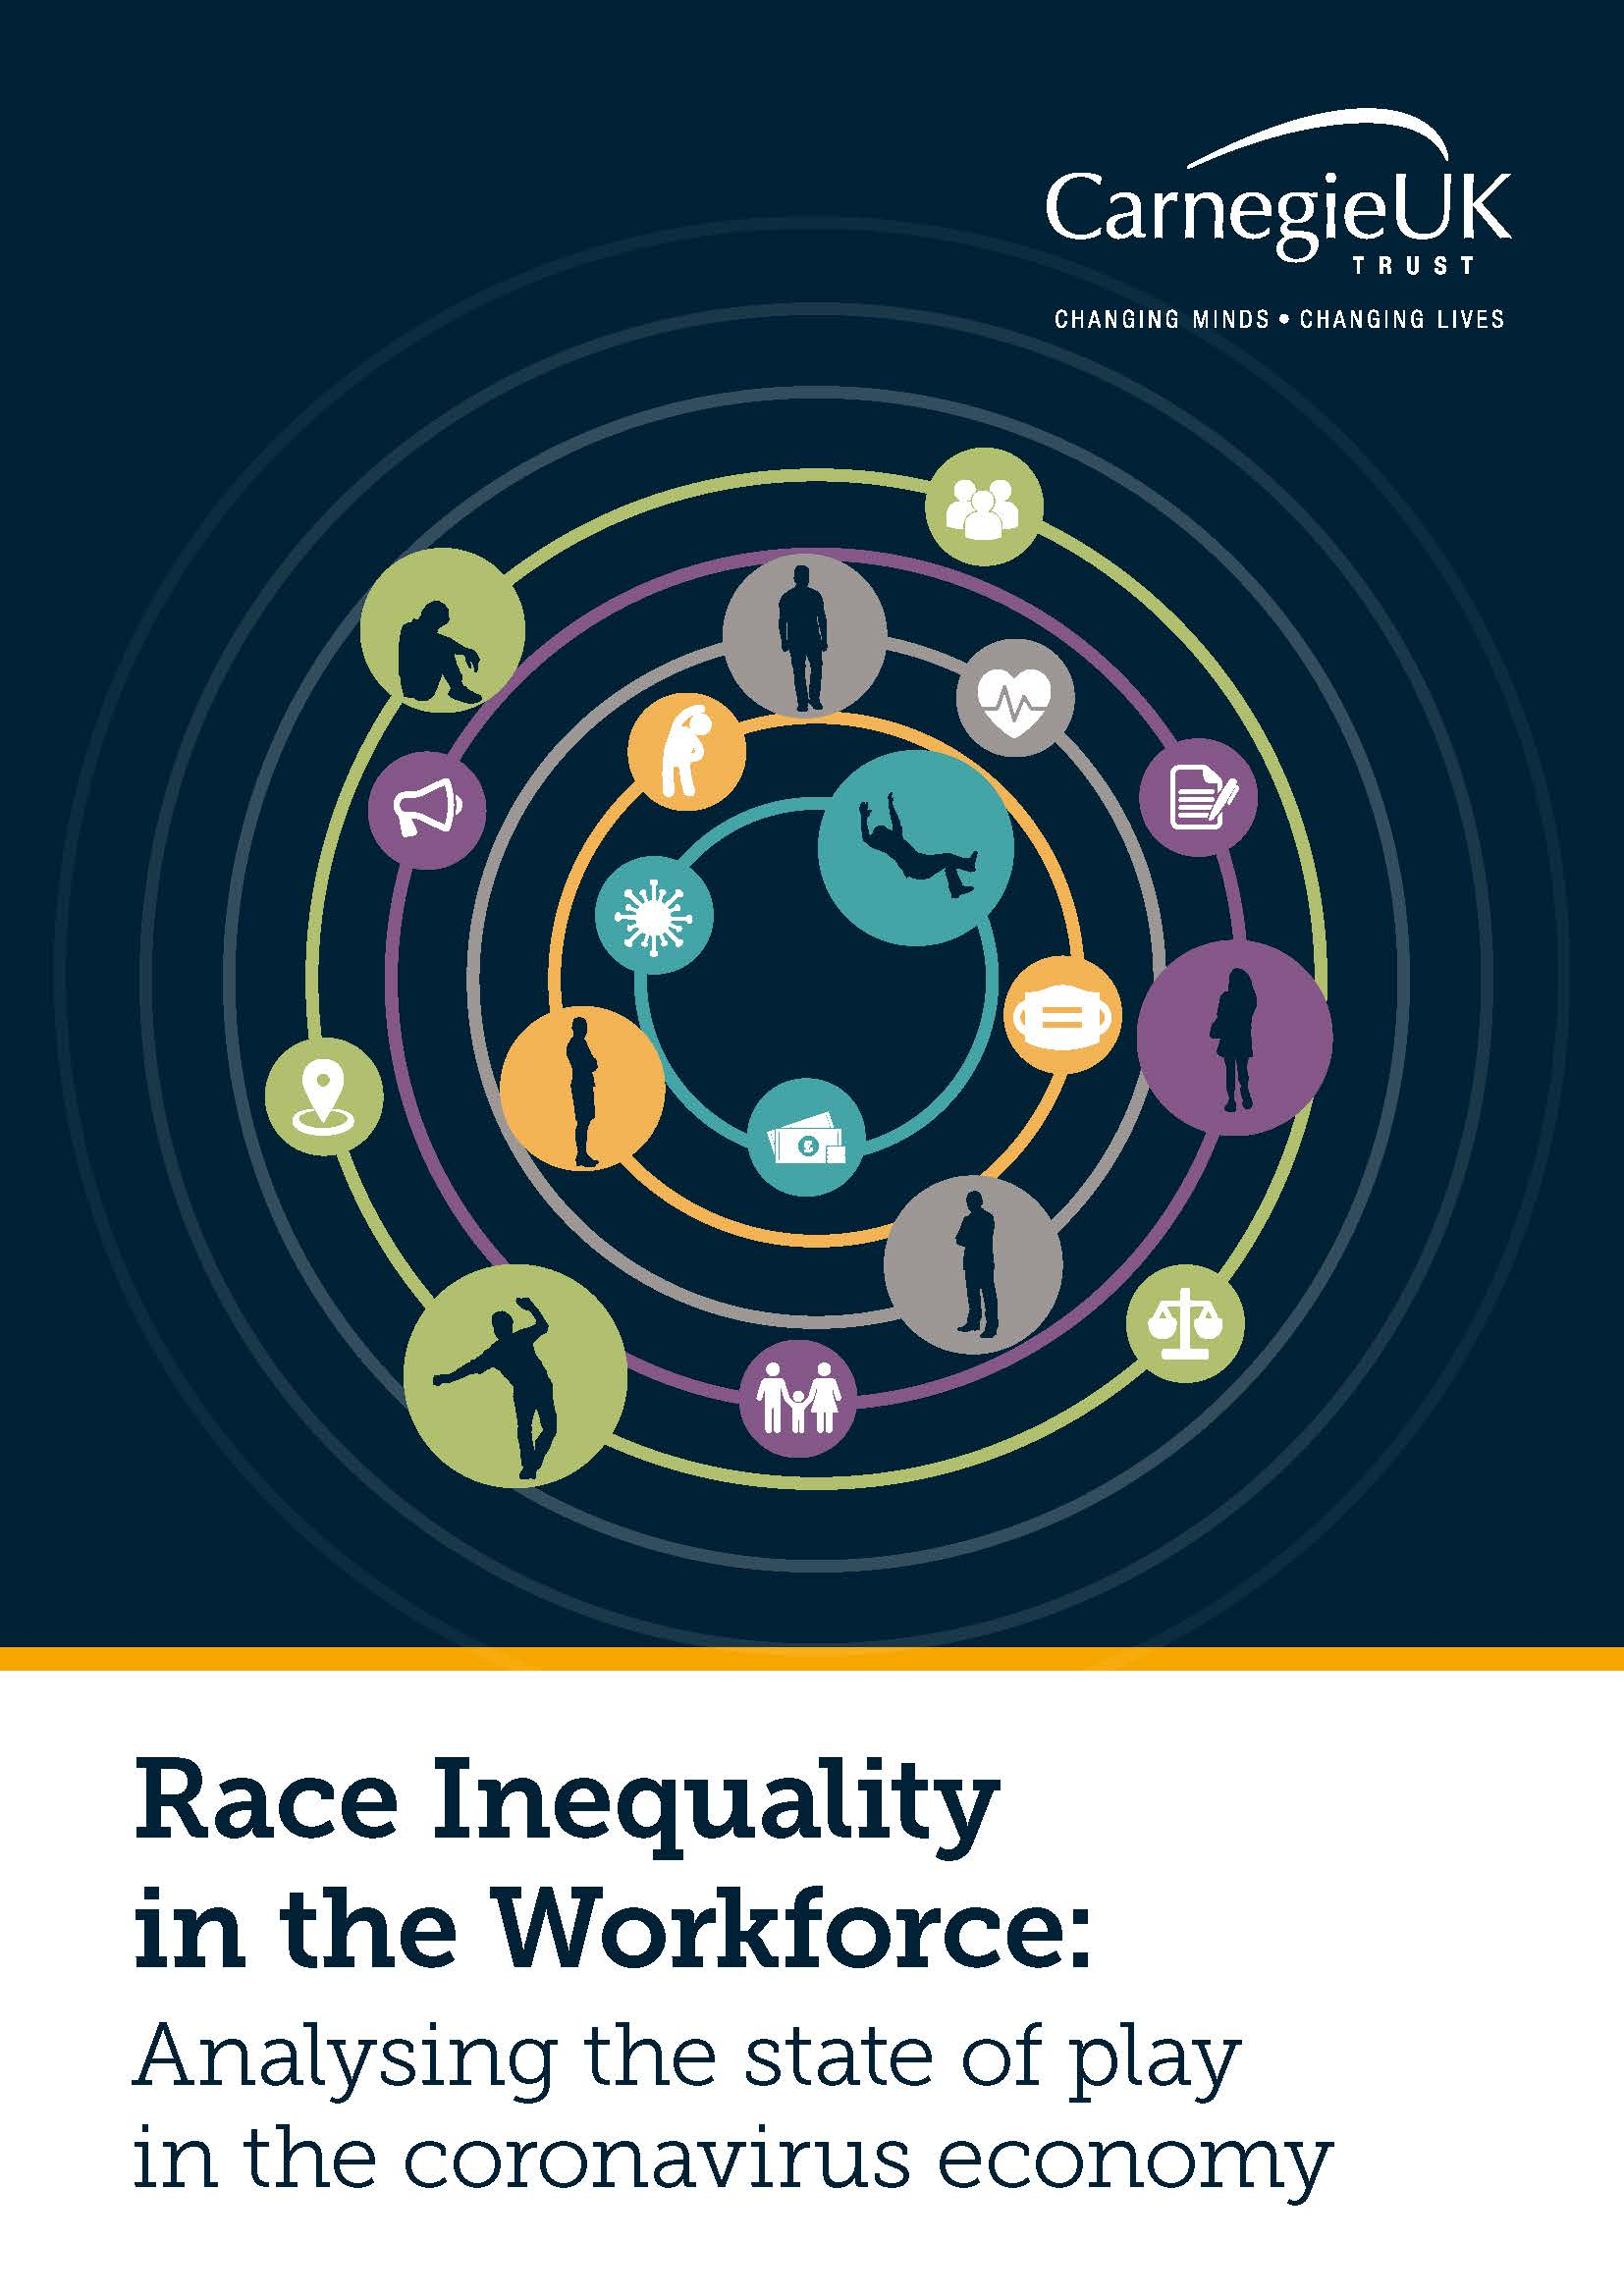 Race Inequality in the Workforce: Analysing the state of play in the coronavirus economy